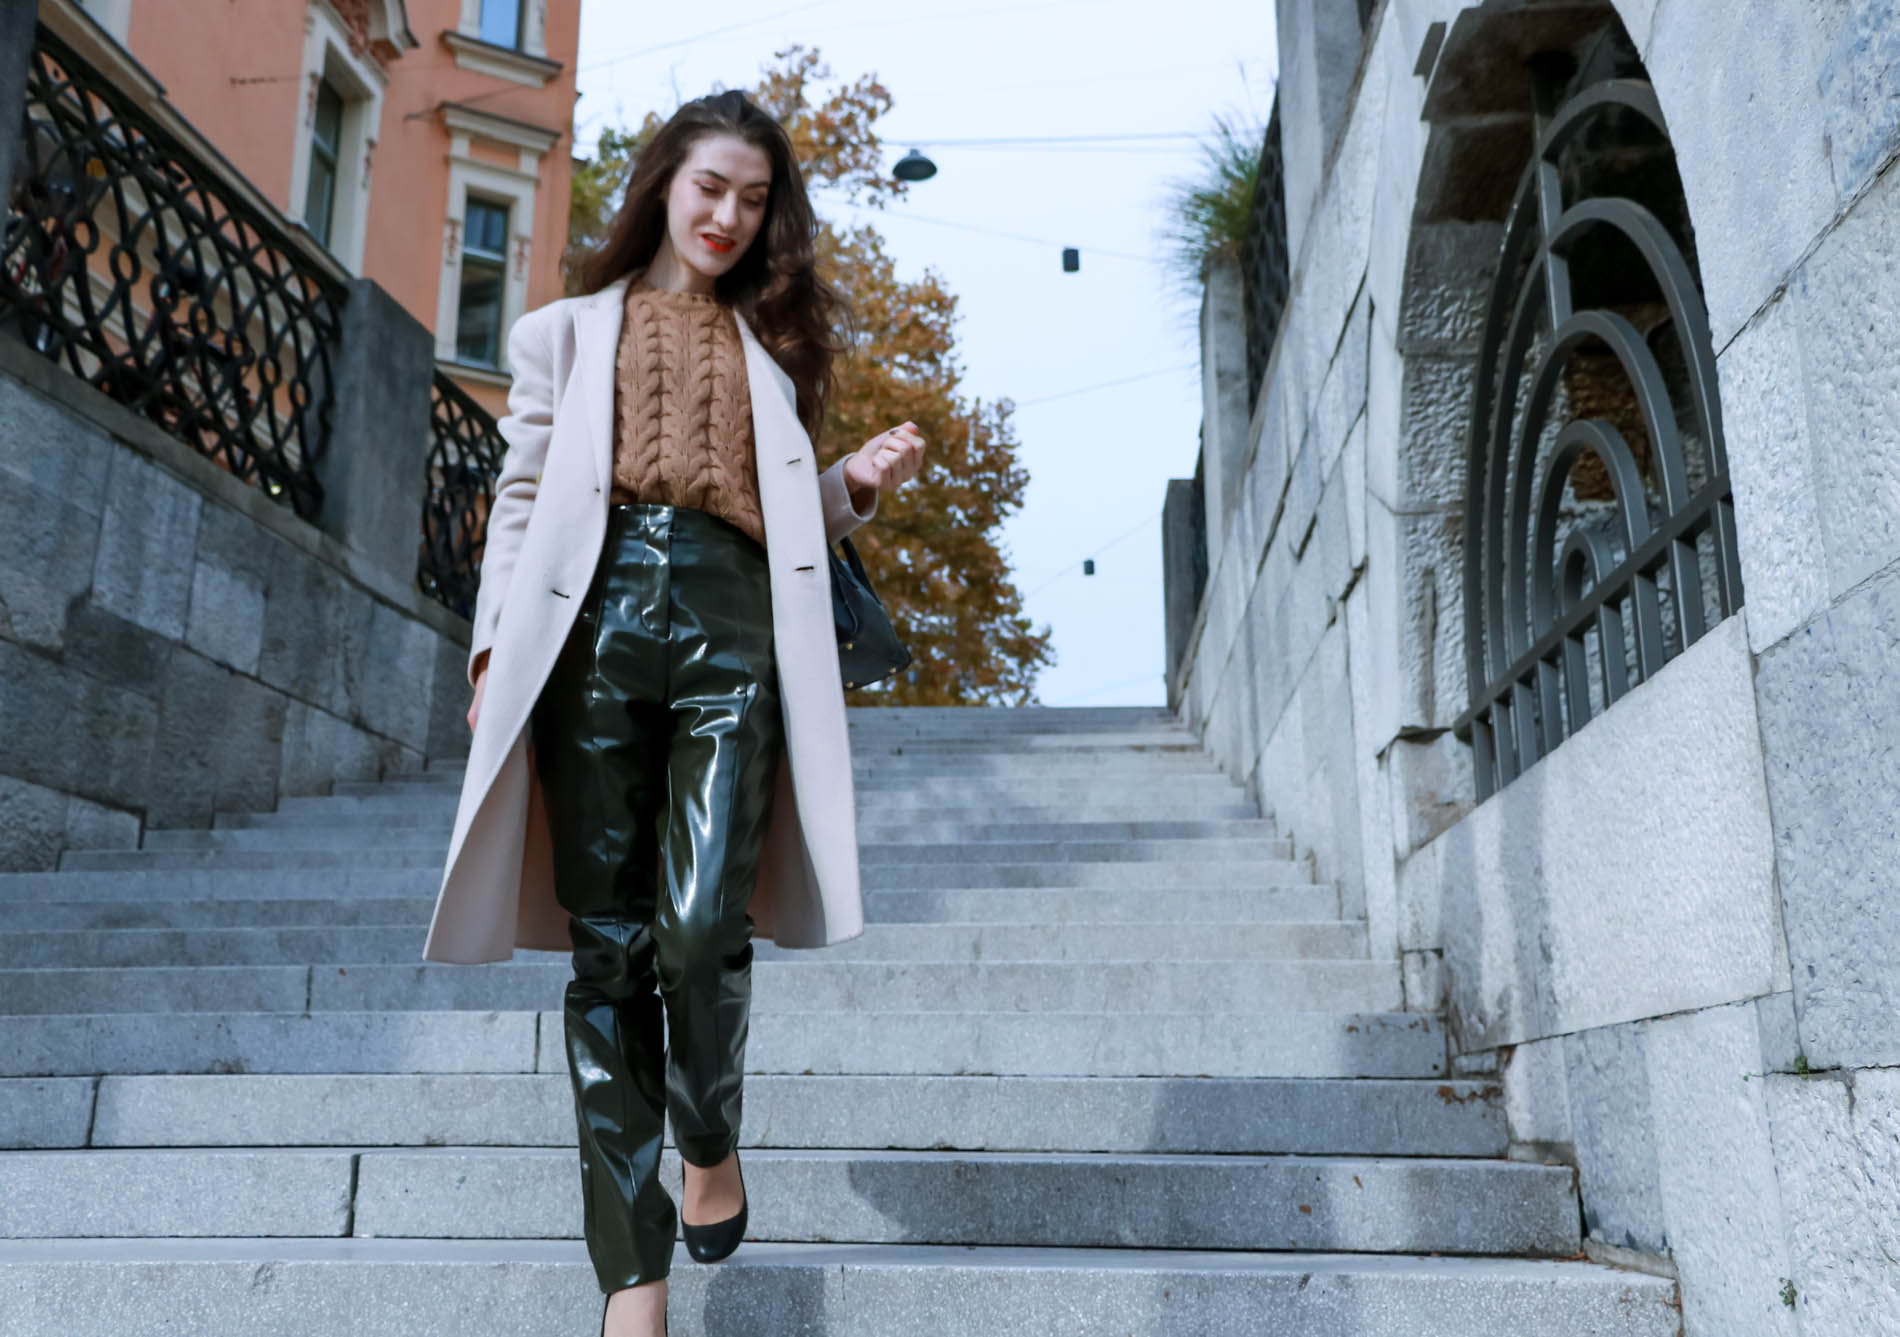 Fashion Blogger Veronika Lipar of Brunette from Wall Street dressed in Acne Studios high-shine pants, Weekened Maxmara double breasted pastel coat, Max Mara camel cable knit sweater and black Aquazzura pumps while walking down the stairs